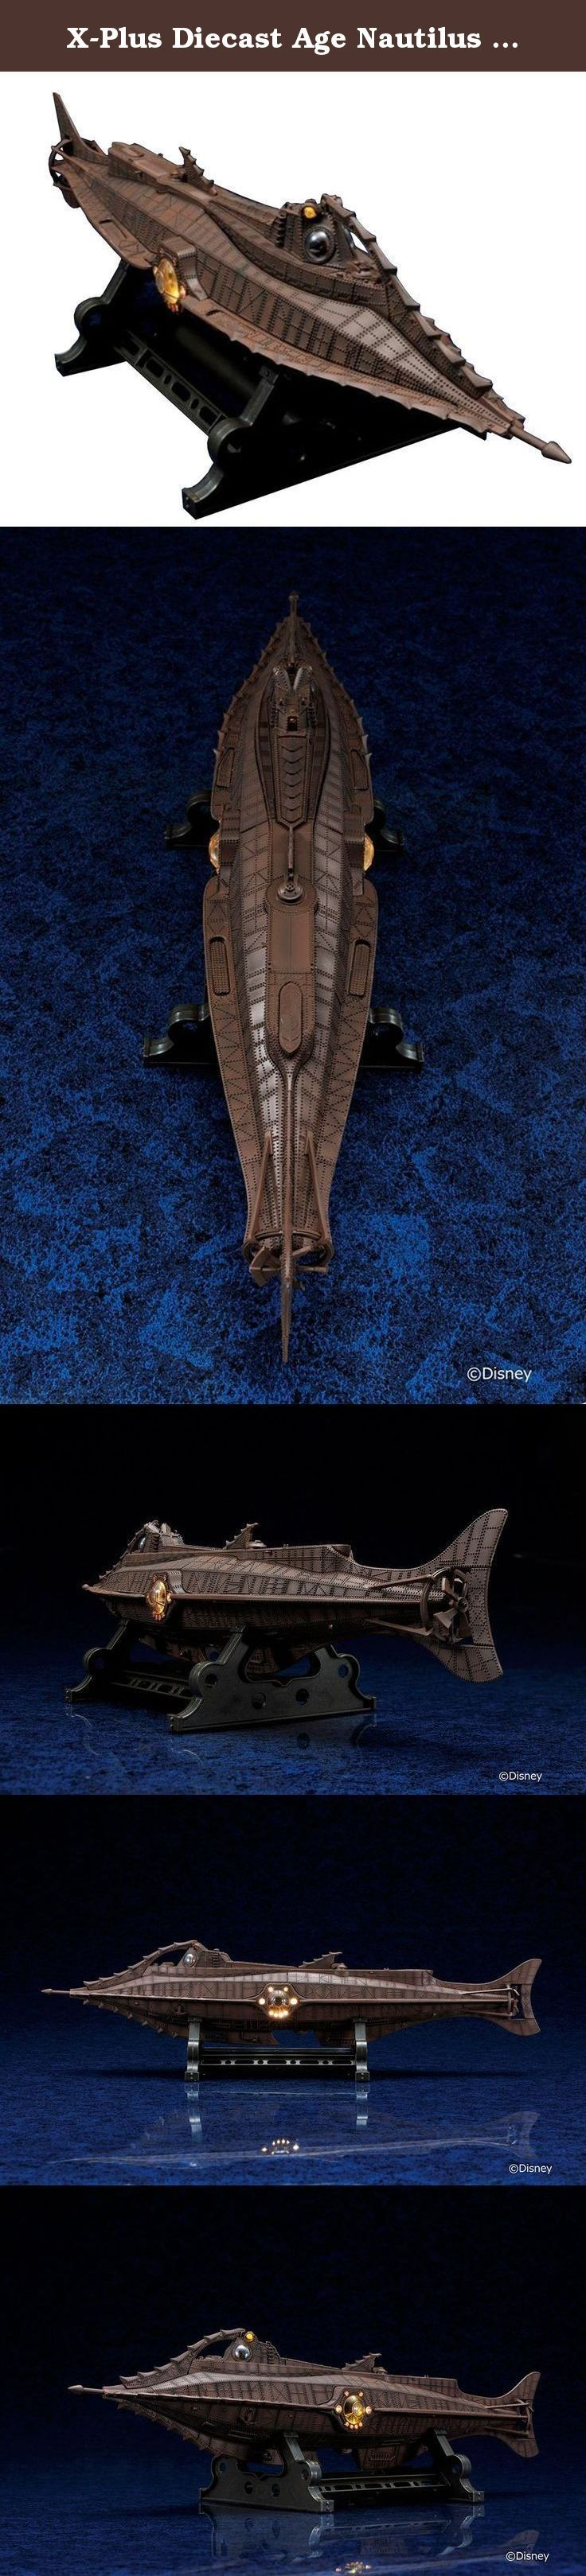 """X-Plus Diecast Age Nautilus """"20,000 Leagues Under The Sea"""" Action Figure. Just in time for the 60th anniversary of Disney's """"20,000 Leagues Under the Sea,"""" X Plus brings us a beautifully finished model of Captain Nemo's legendary Nautilus submarine!."""